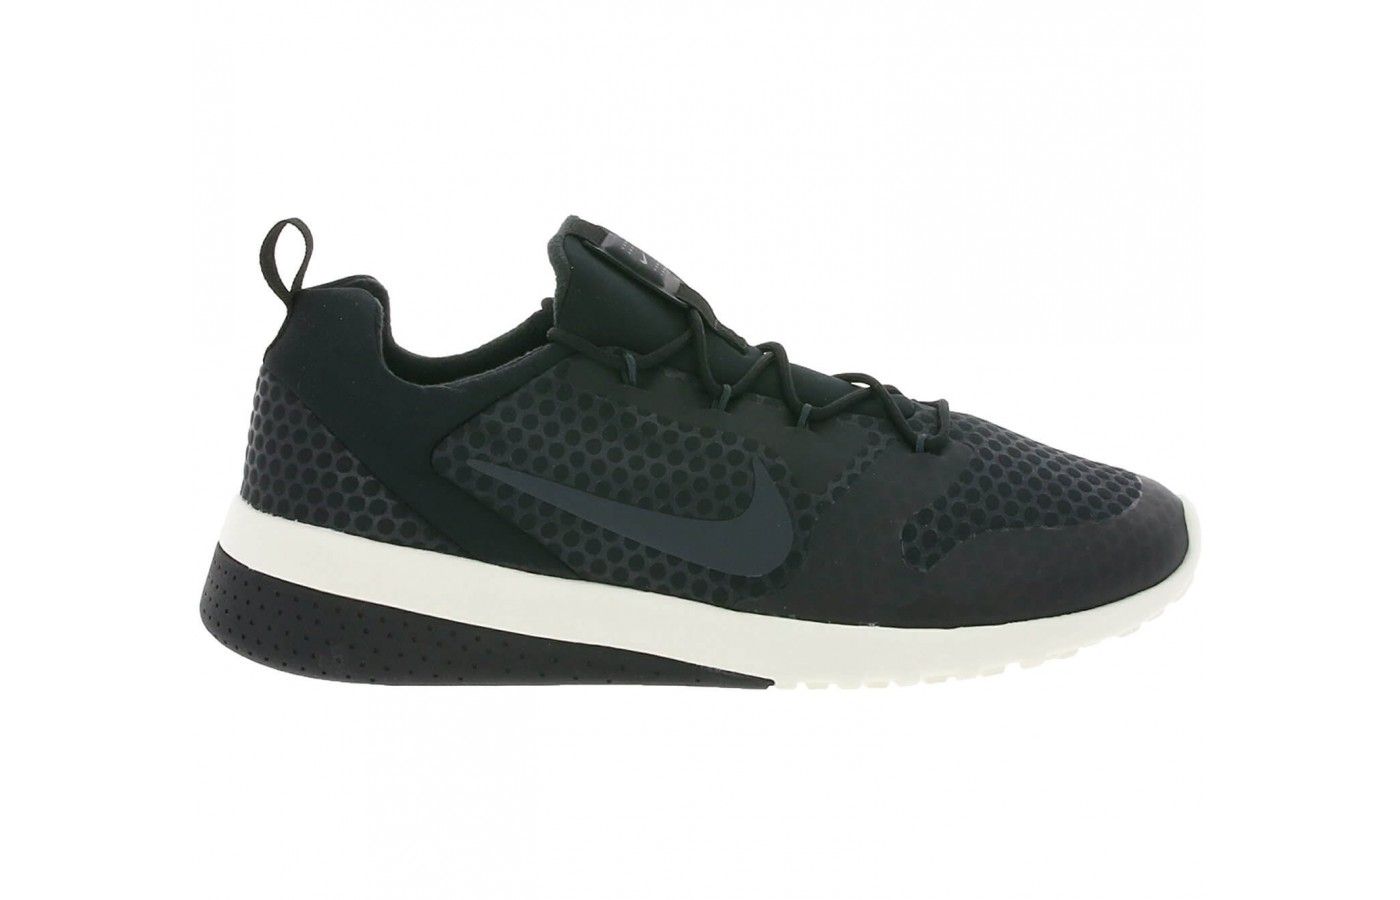 Nike's signature style comes through in the CK Racer.